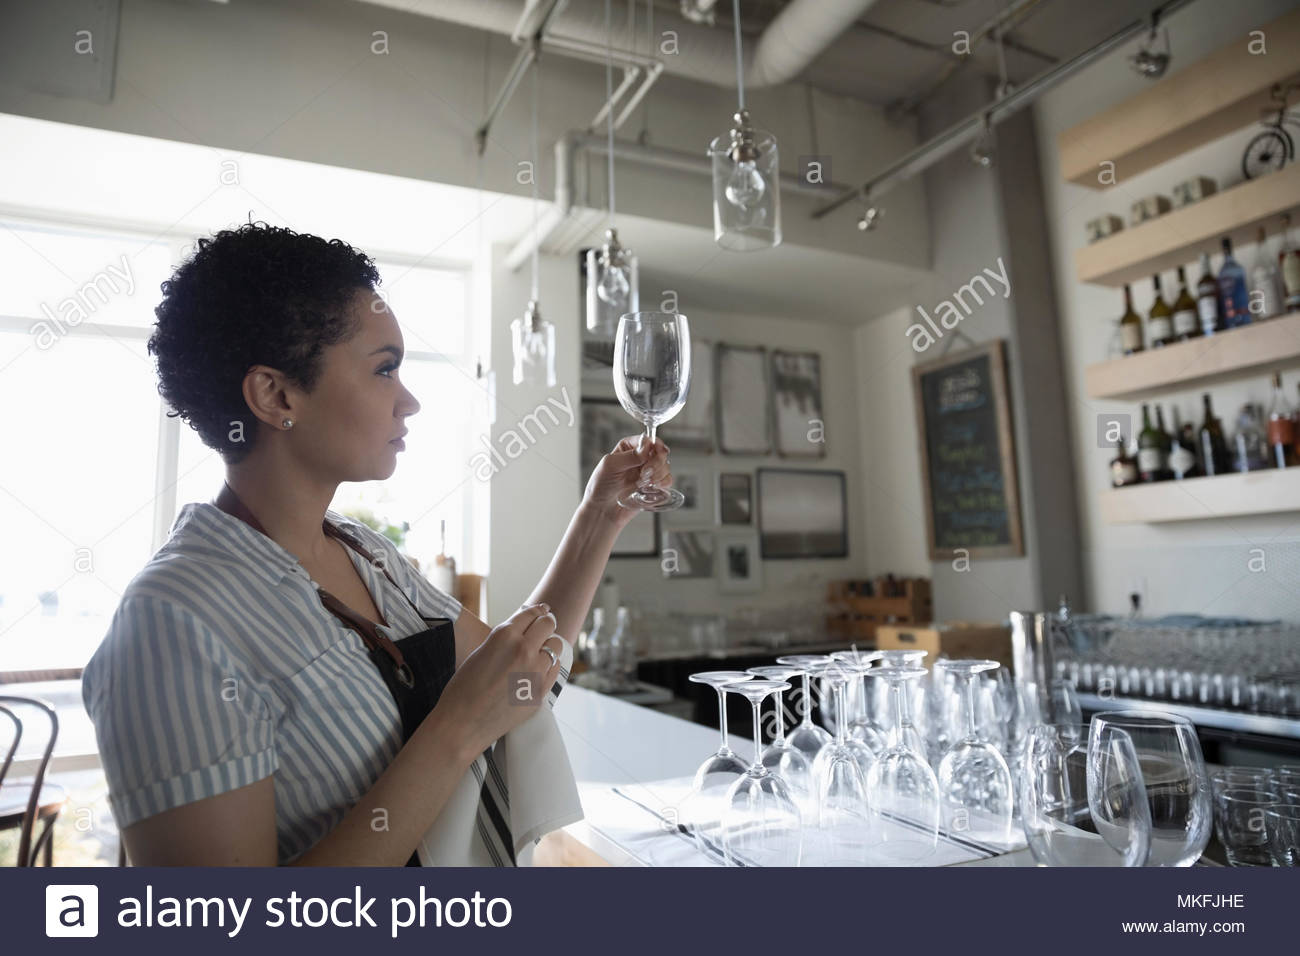 Young woman small business owner drying wine glasses in bar - Stock Image